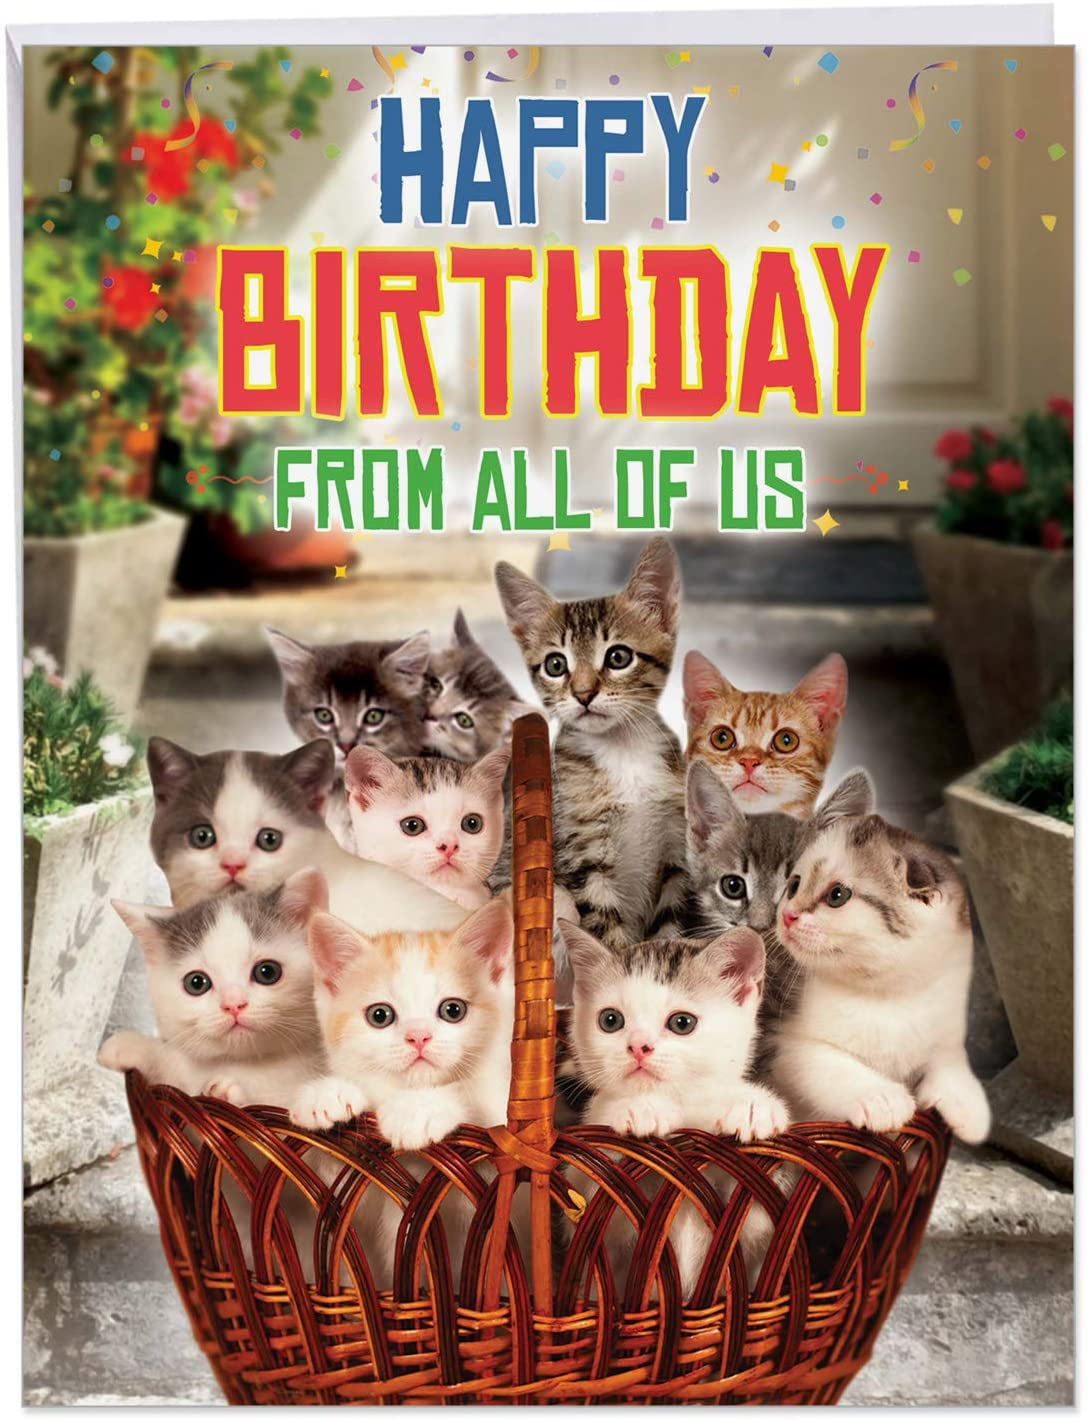 NobleWorks - Jumbo Cat Birthday Greeting Card (8.5 x 11 Inch) - Pet Animal Humor, Big Group Card for Birthdays - From All Us Cats Birthday J5980BDG-US